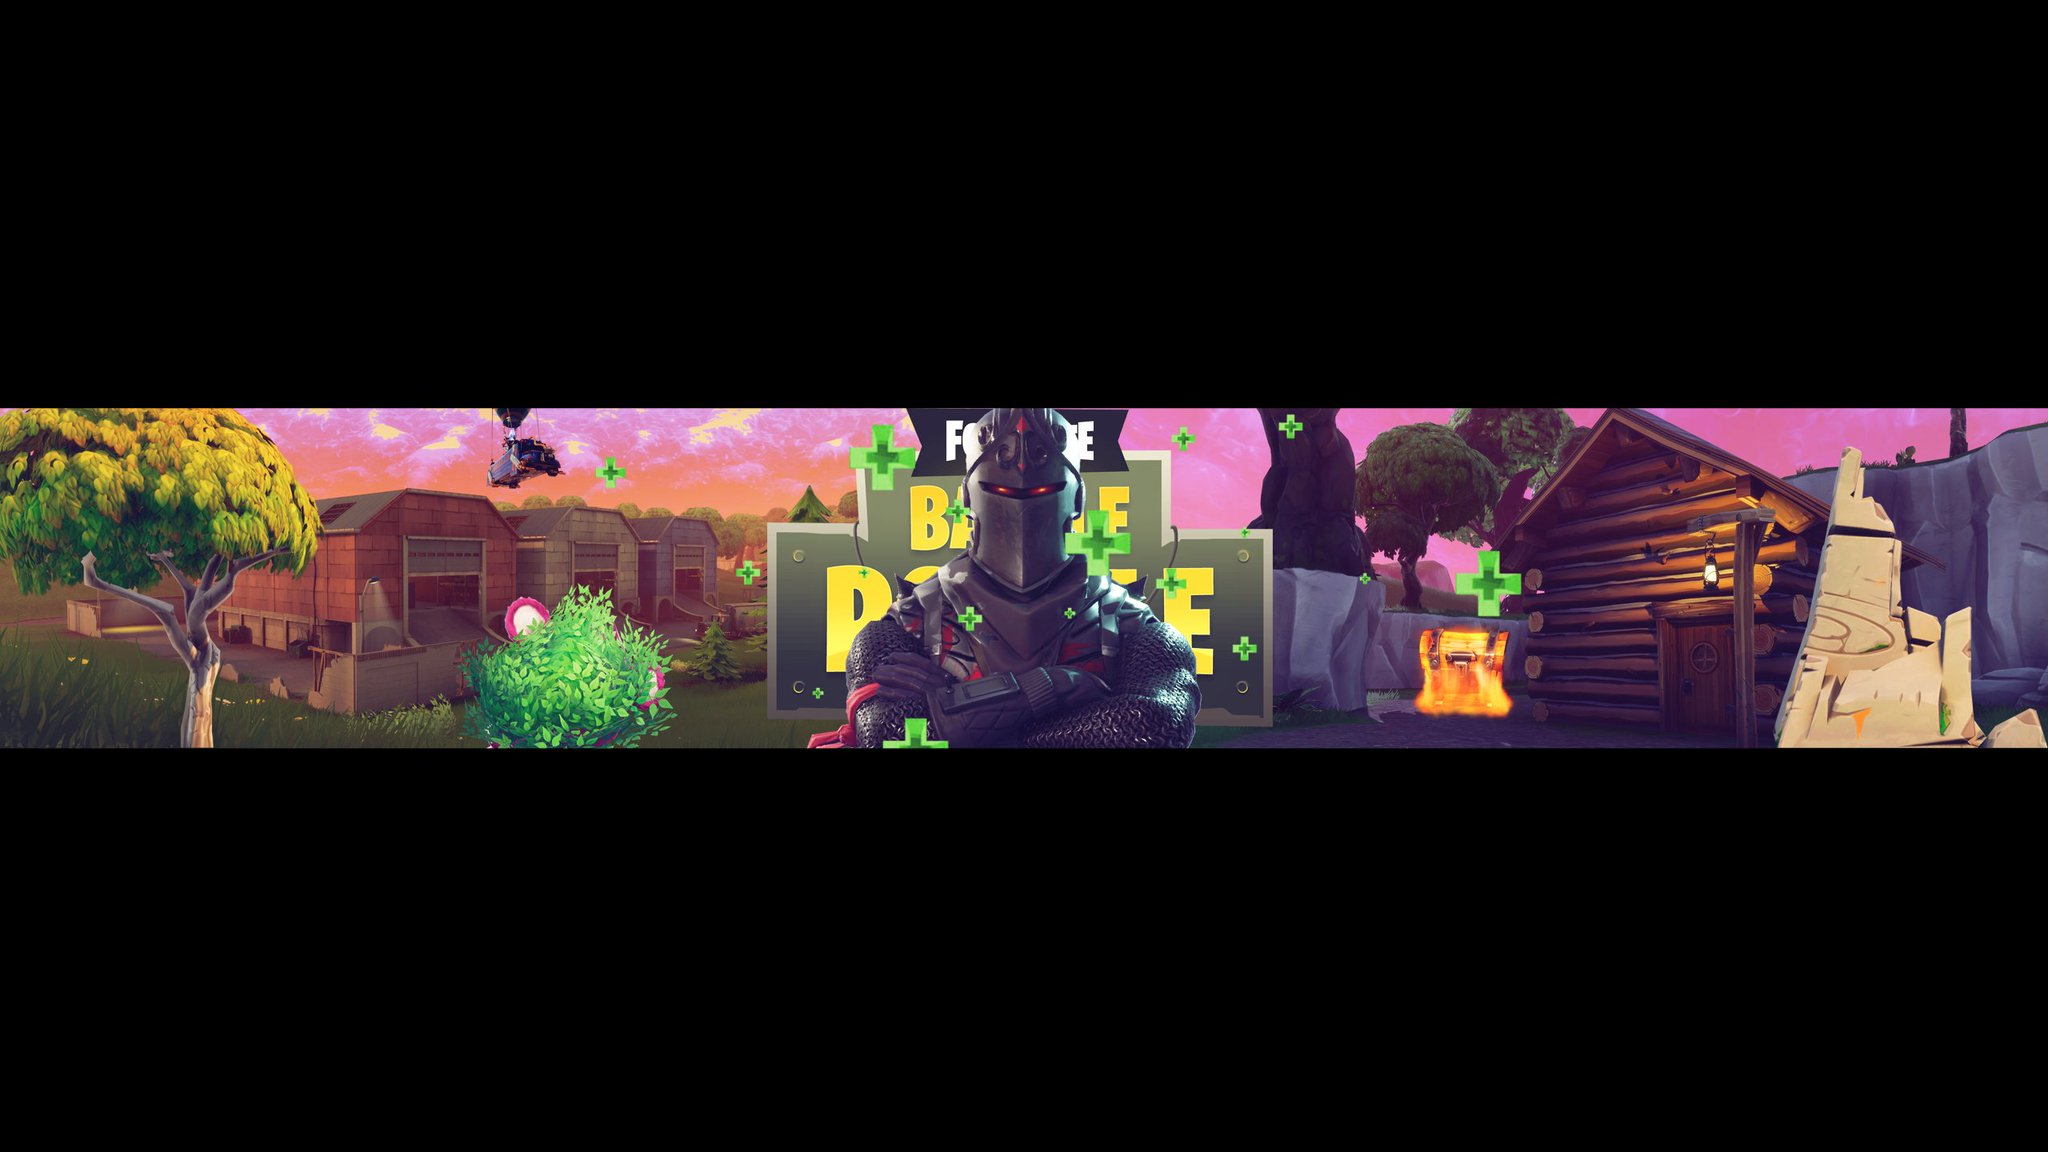 Allsortshd On Twitter Free Youtube Banner Fortnite Black